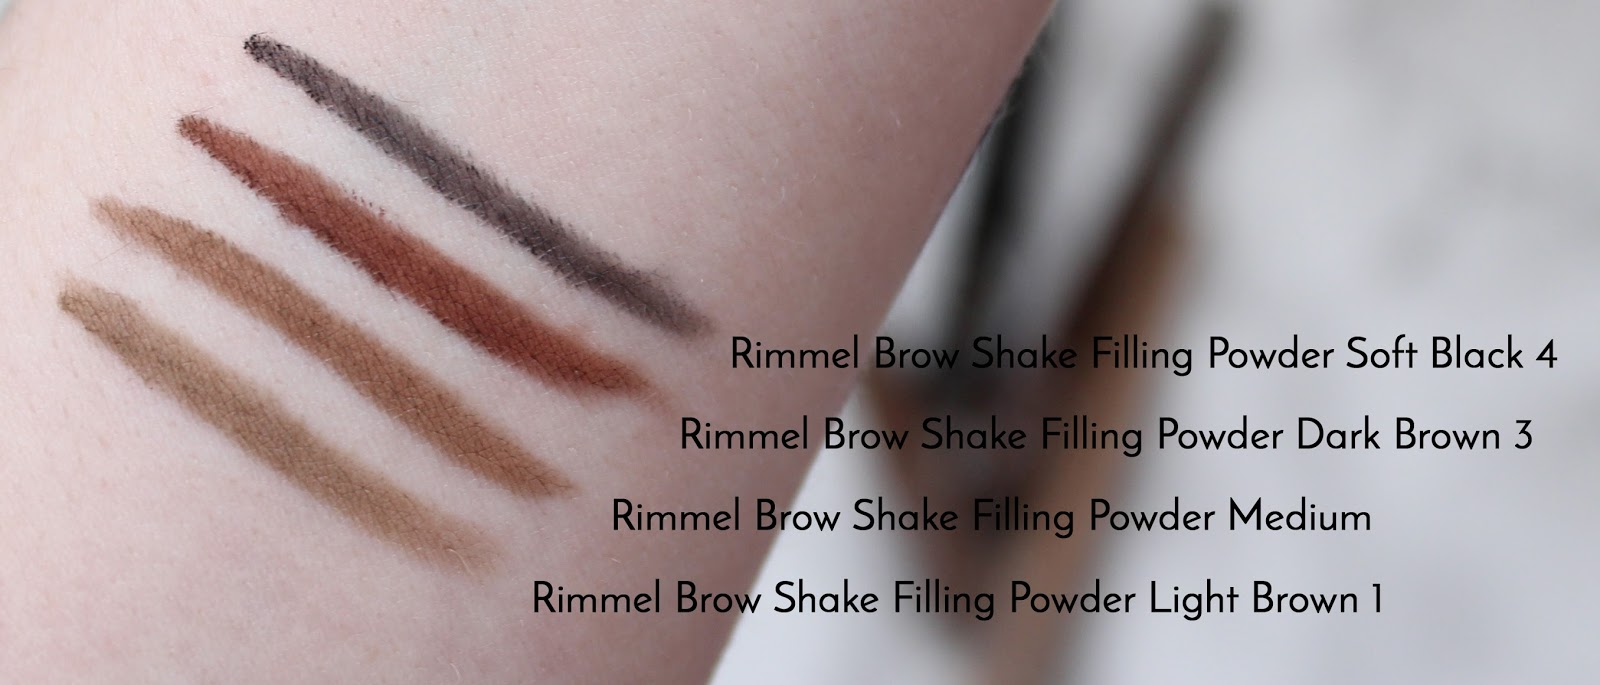 Rimmel Brow Shake Filling Powder | Review & Swatches